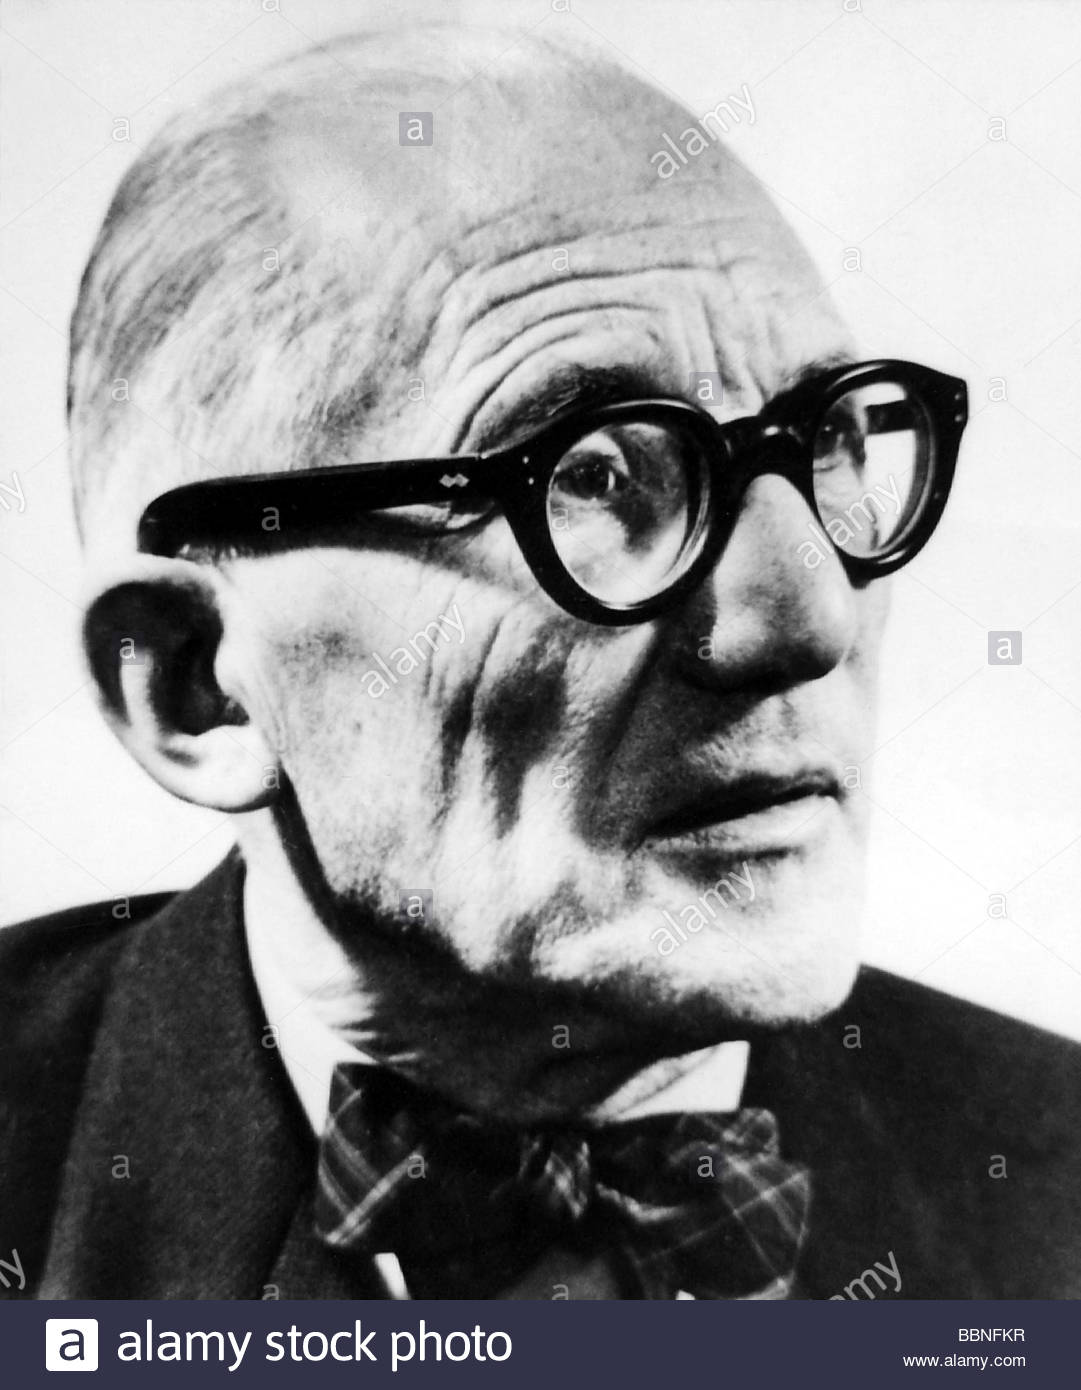 Le Corbusier (Charles-Edouard Jeanneret-Gris), 6.10.1887 - 27.8.1965, Swiss - French architect, portrait, 1950s, - Stock Image